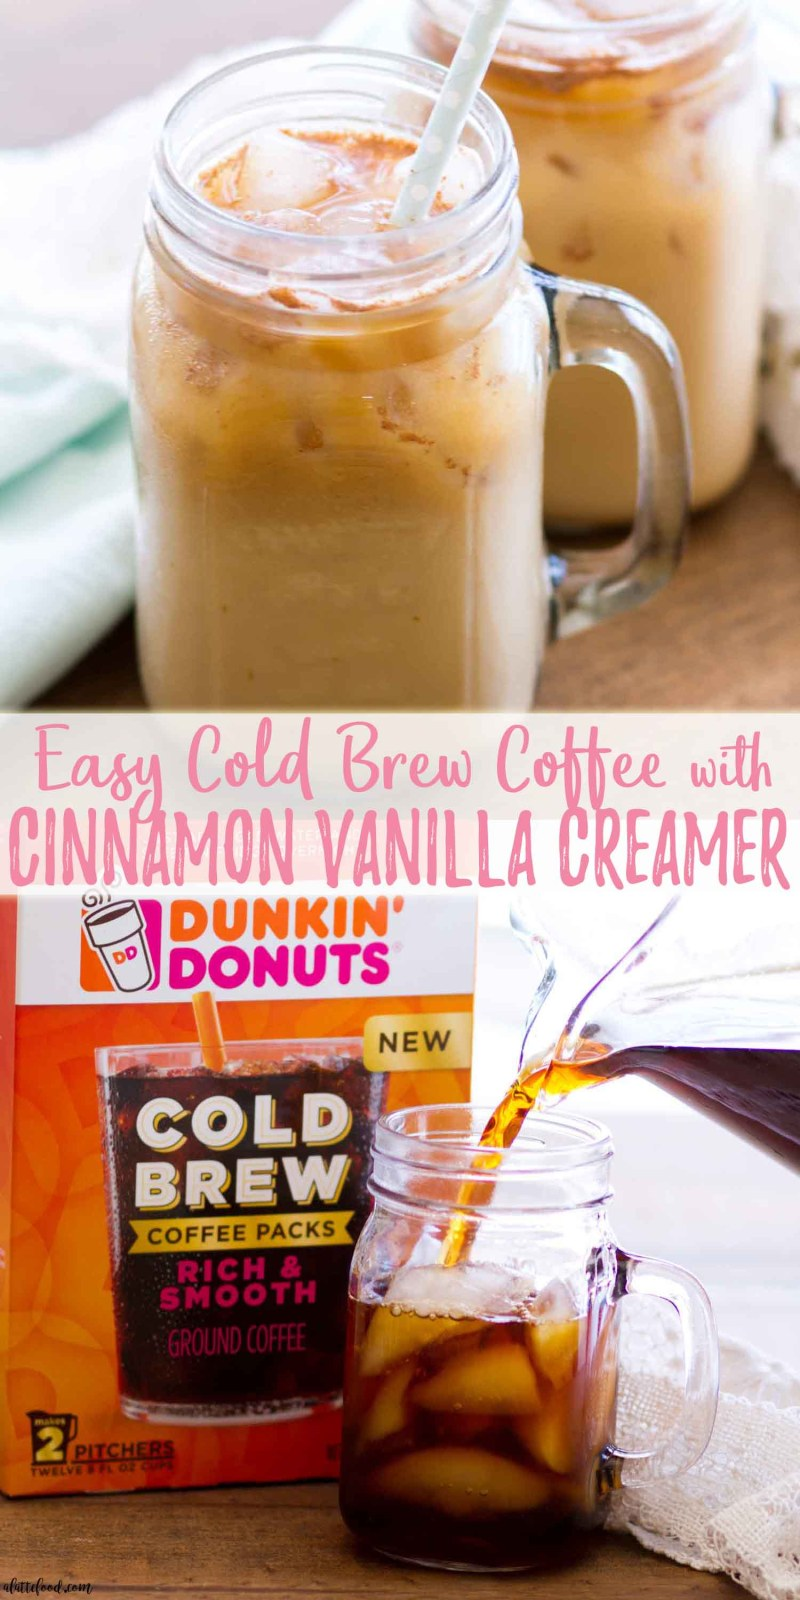 This homemade easy cold brew coffee recipe is made with Dunkin' Donuts® Cold Brew Coffee Packs and sweetened with a homemade cinnamon vanilla creamer recipe. It's the perfect cold brew coffee recipe for spring and summer! Plus, a step-by-step video!